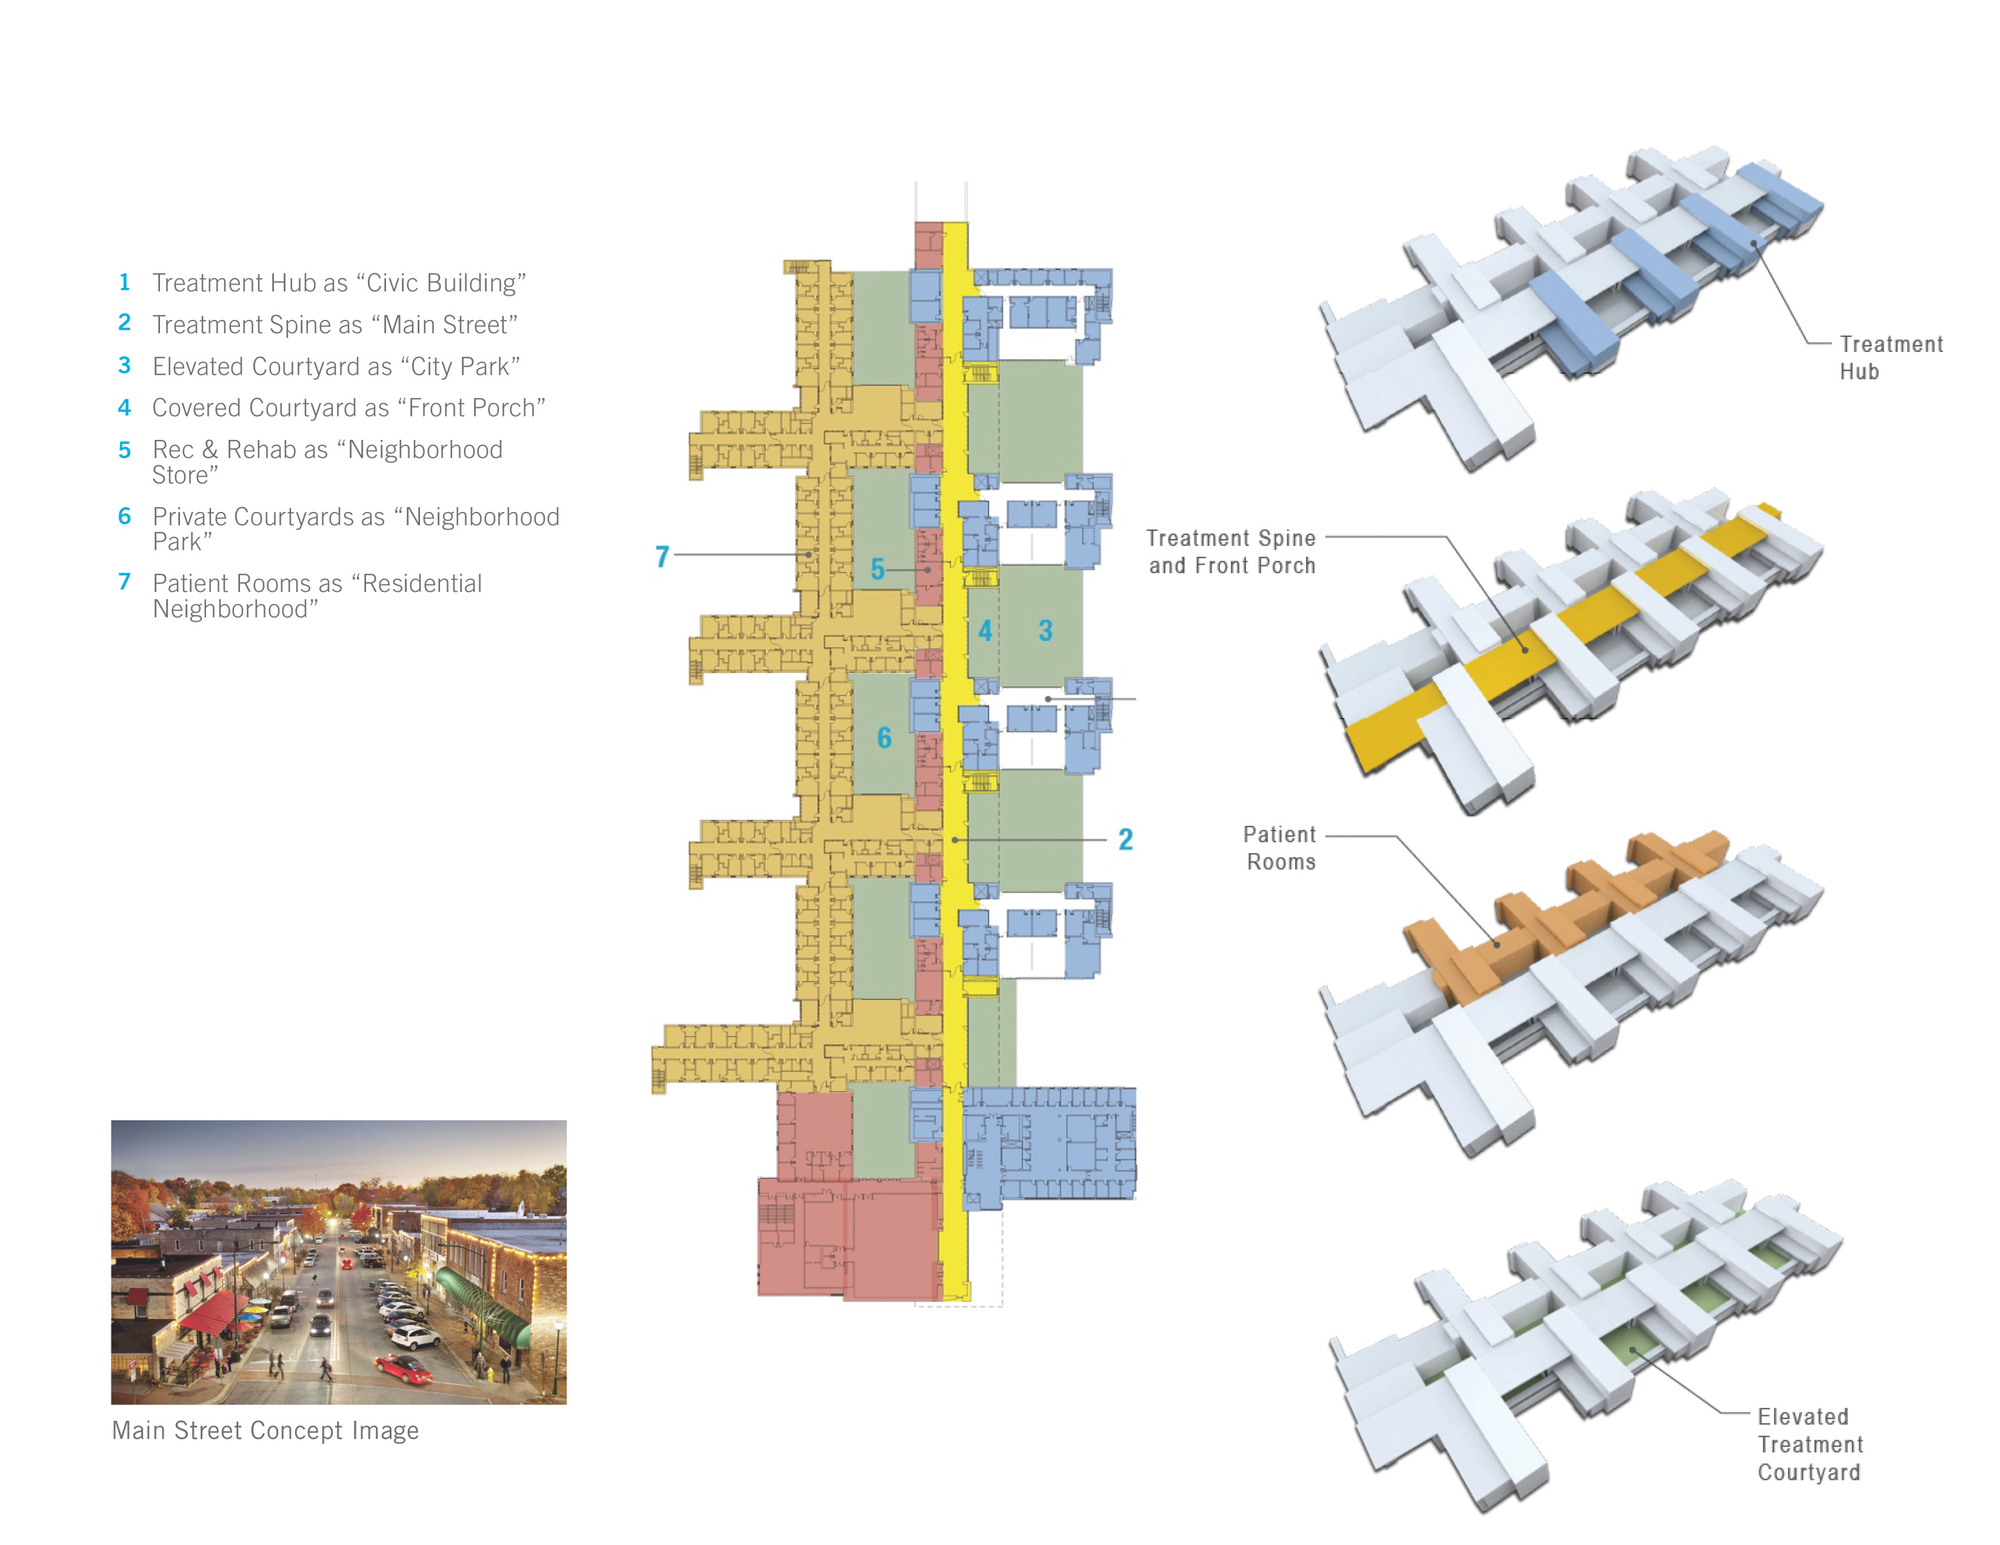 Cherry hospital perkinswill archdaily uses diagrams ccuart Images